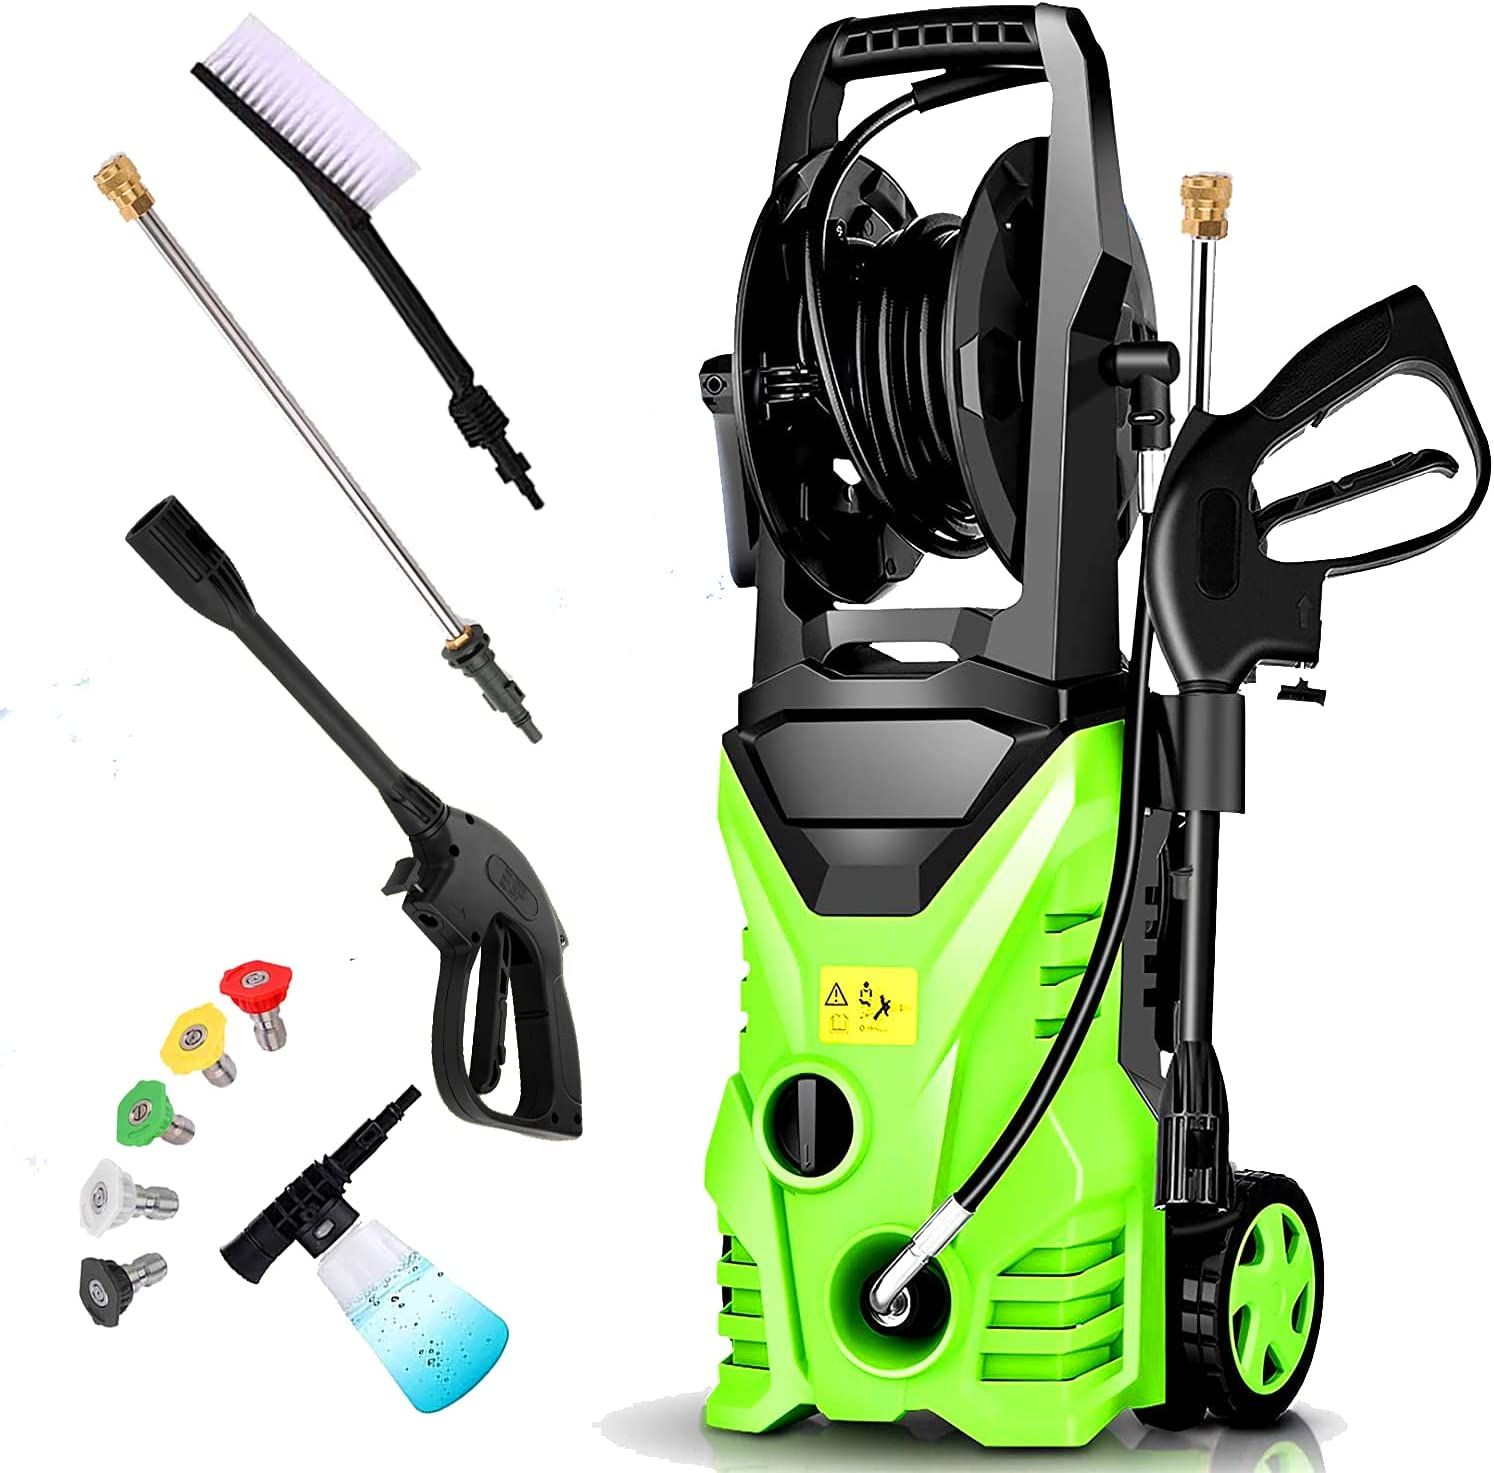 Homdox 2950 PSI Pressure Washer 1.75 GPM Power Washer 1800W Electric Pressure Washer with 5 Nozzles,Hose Reel for Cars,Porch,Furniture,Side,Patio (Green)